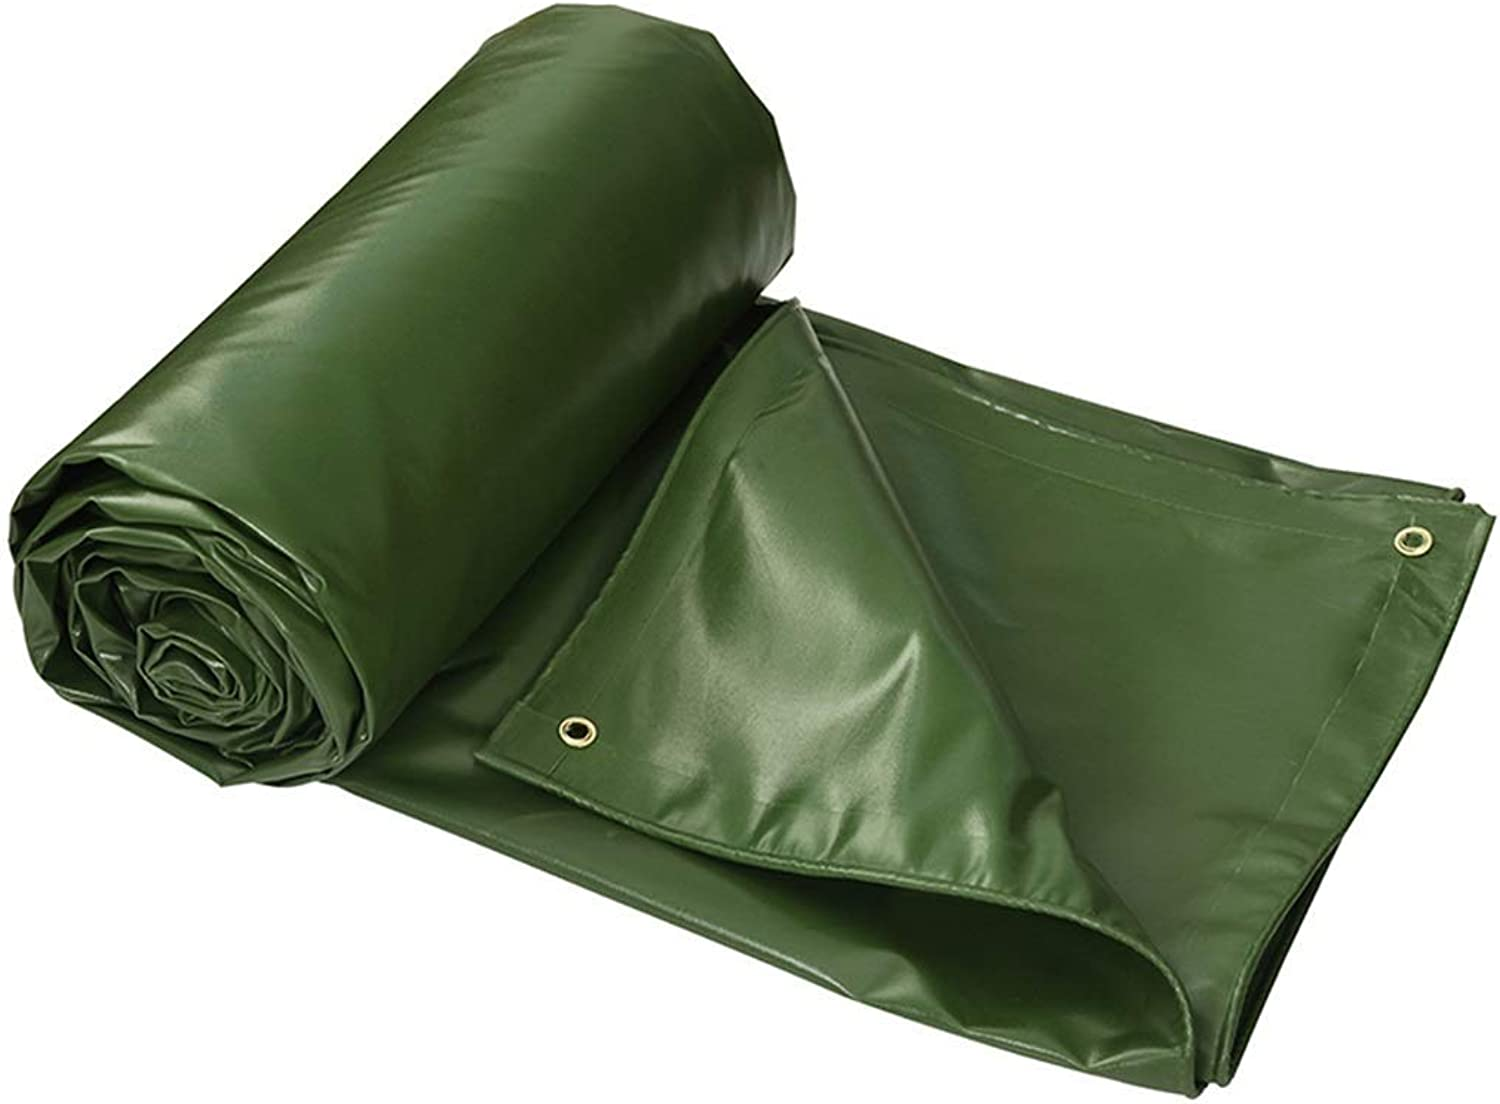 GJ@ Heavy Duty Tarp,Thick Waterproof, UV Resistant,with Grommets and Reinforced Edges,for Cars, Boats, Construction Contractors, Campers, and Emergency Shelter (color  Green)